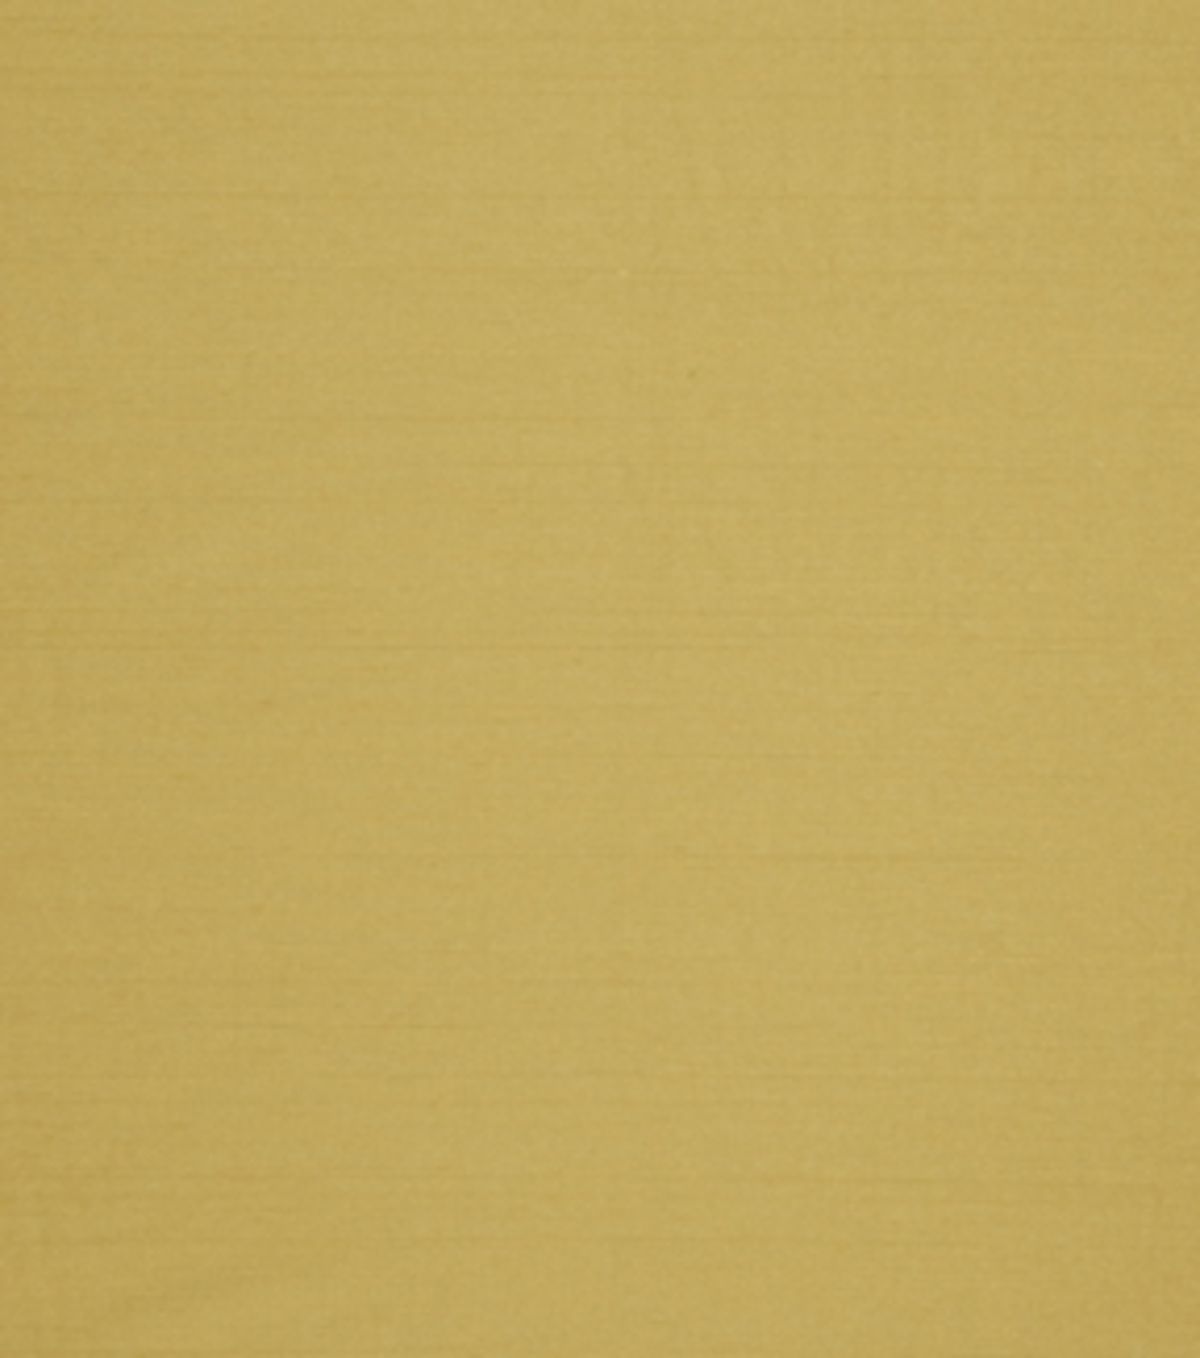 Home Decor 8\u0022x8\u0022 Fabric Swatch-Signature Series Bravo Pampas